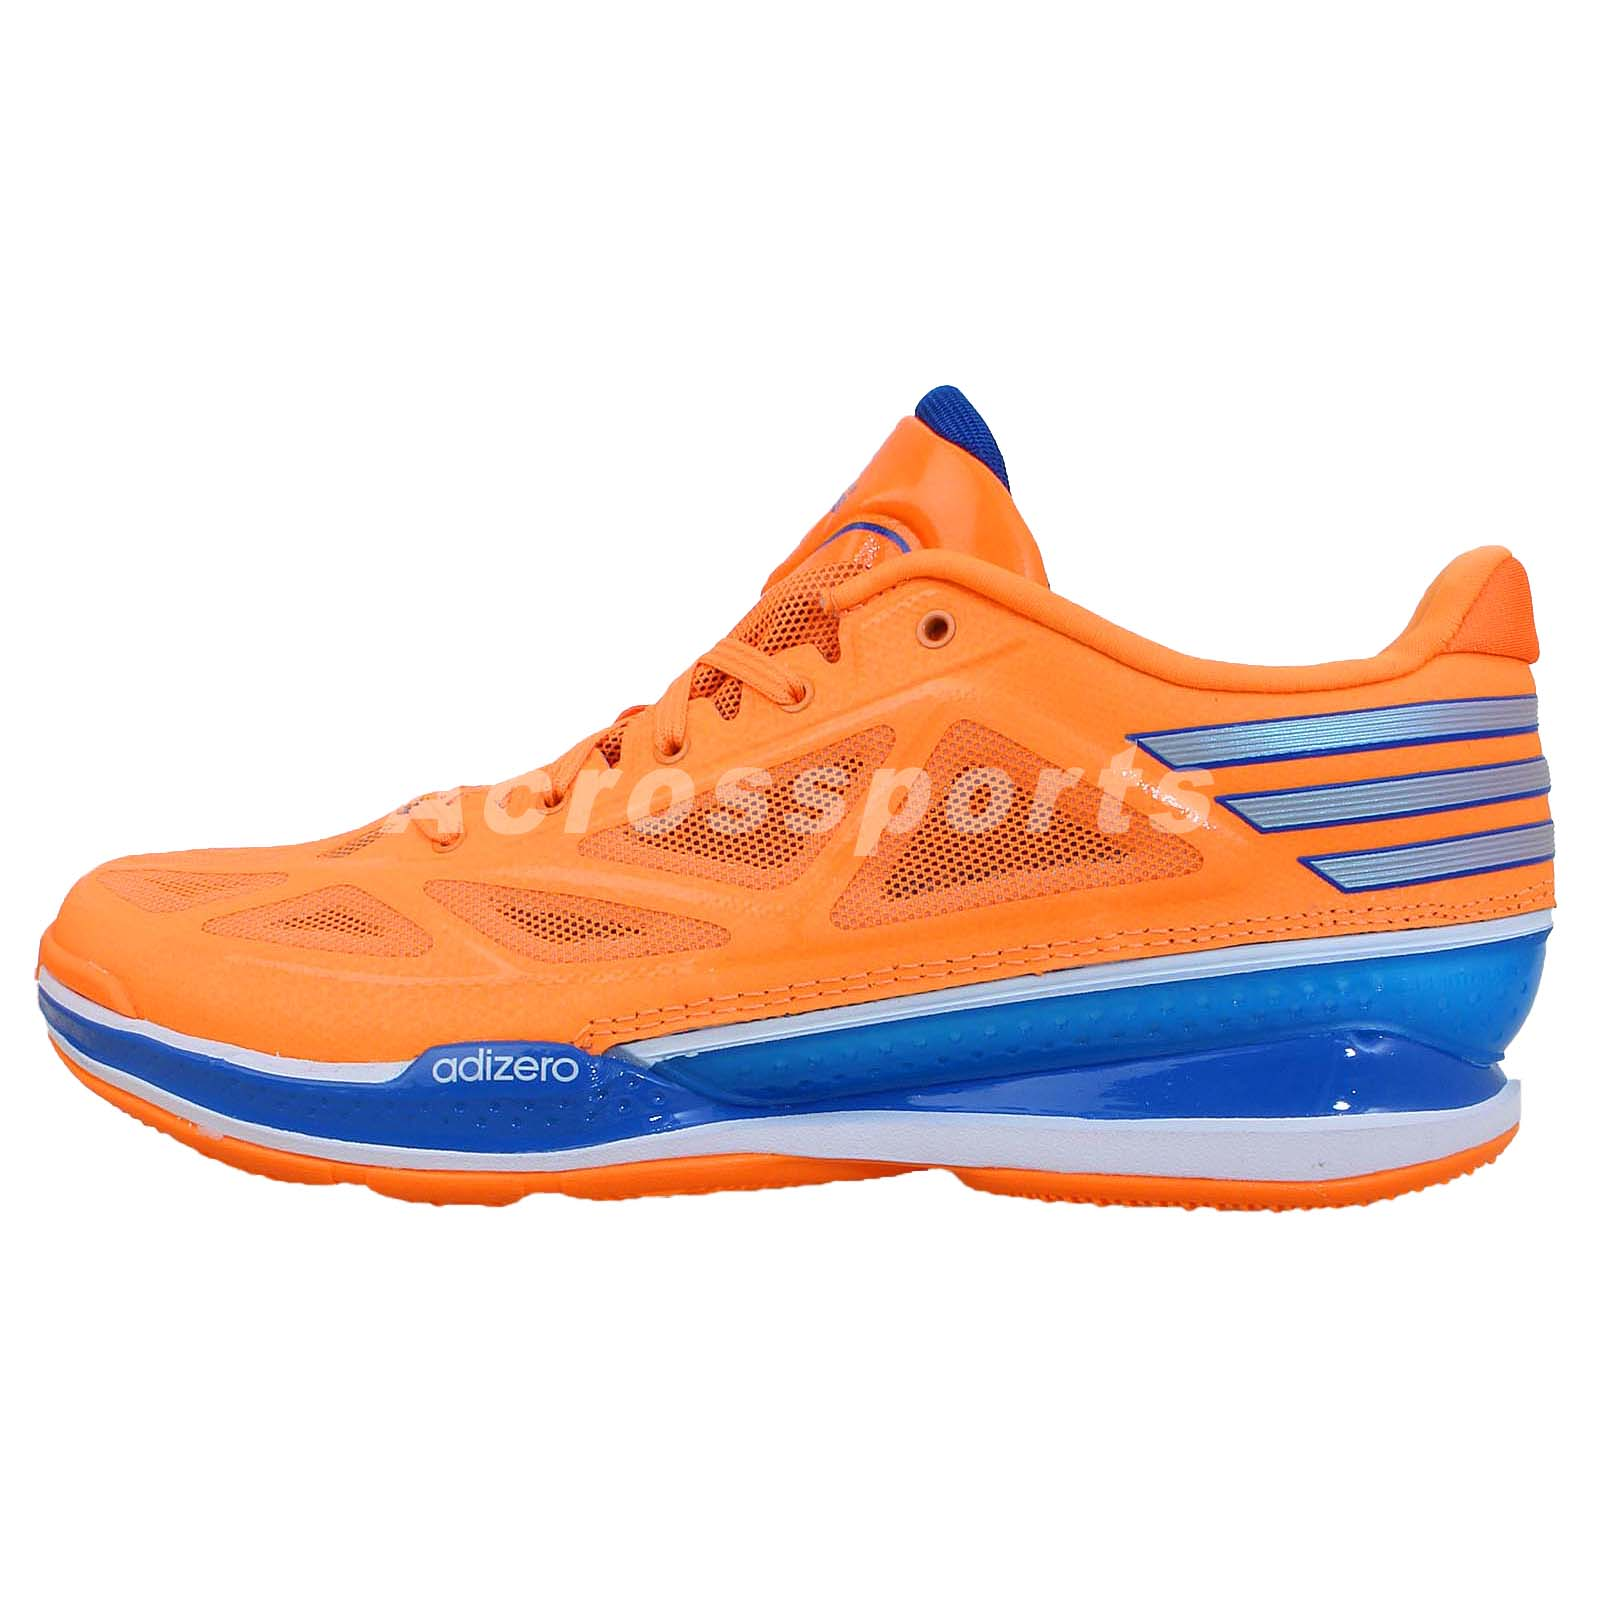 new arrival 803d6 c88e1 Adidas Adizero Crazy Light 3 Low Orange Blue 2014 Mens